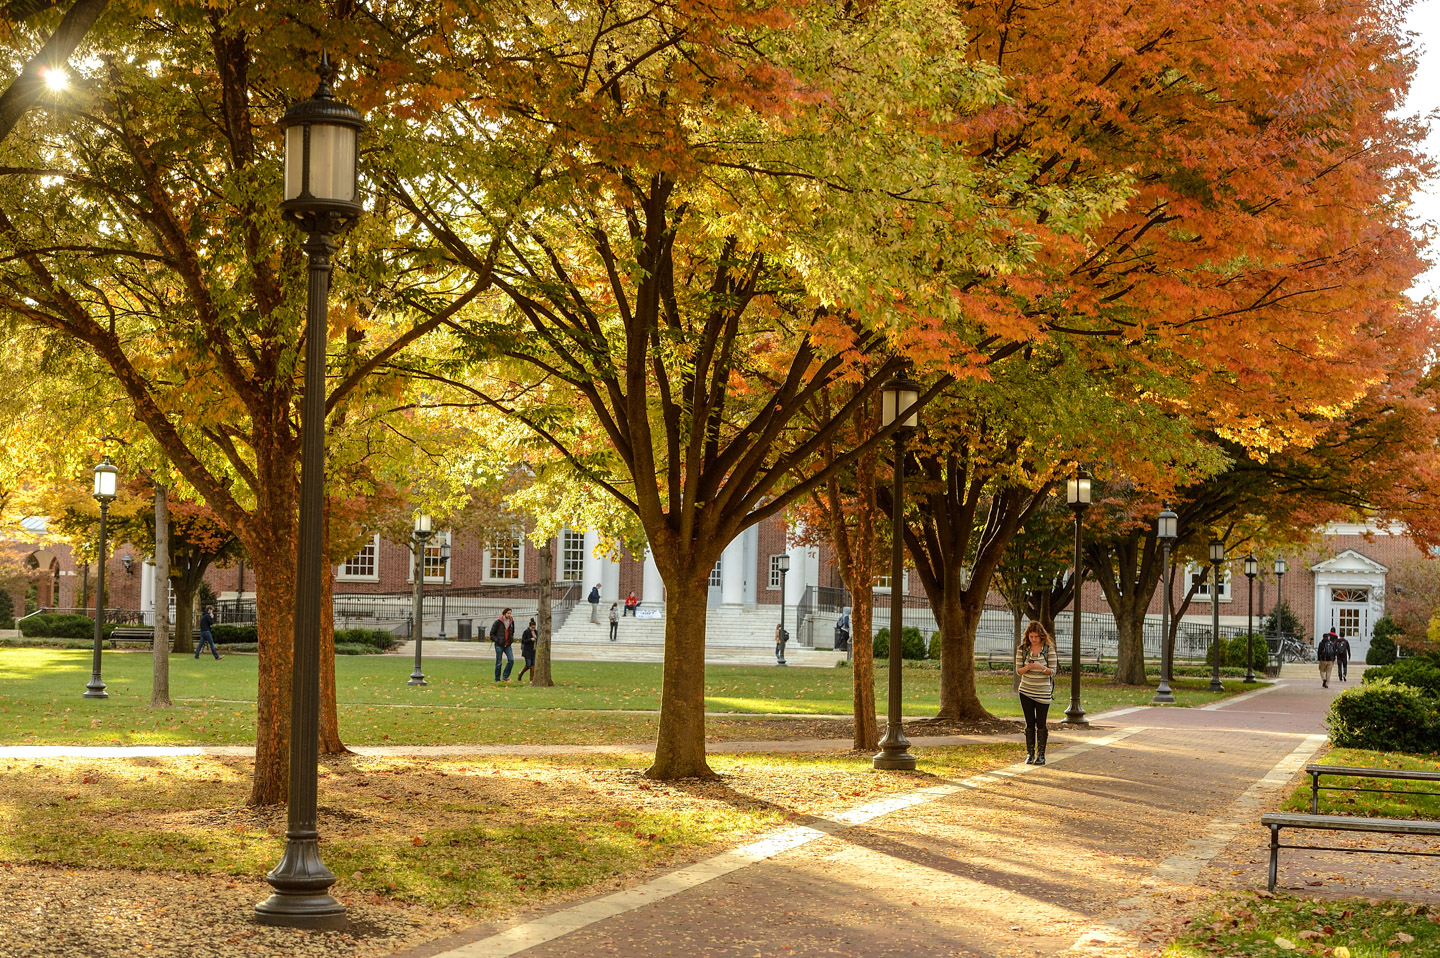 Campus trees during autumn